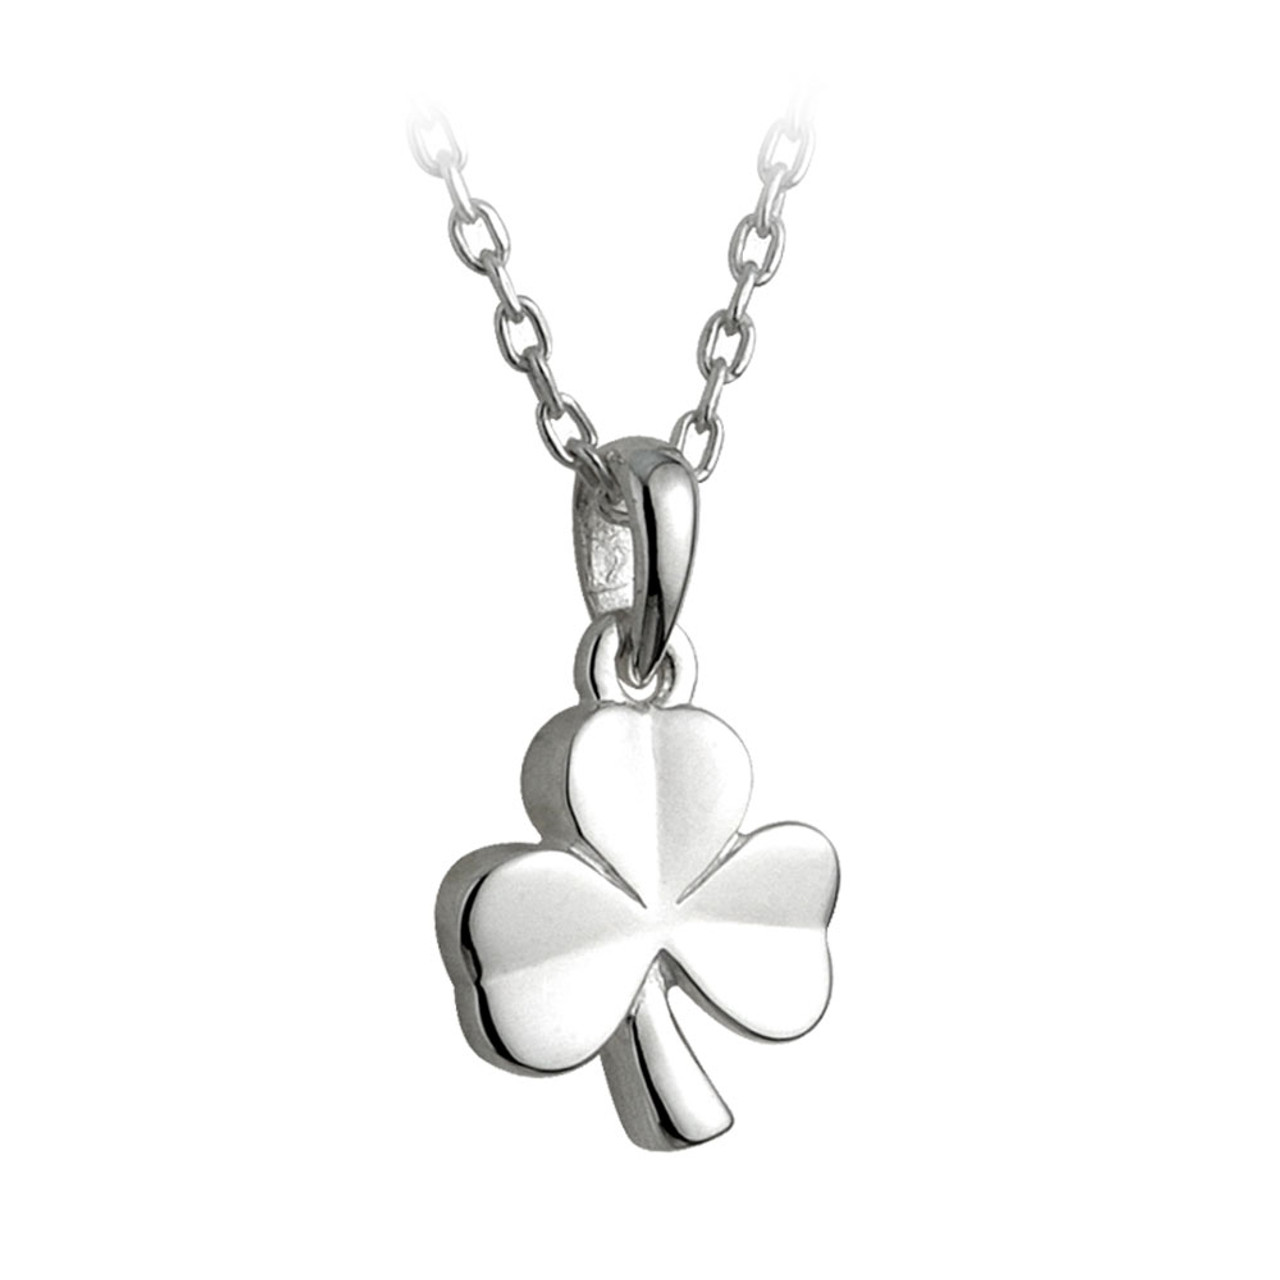 Silver Plated Shamrock Necklace, 16 Inch Chain